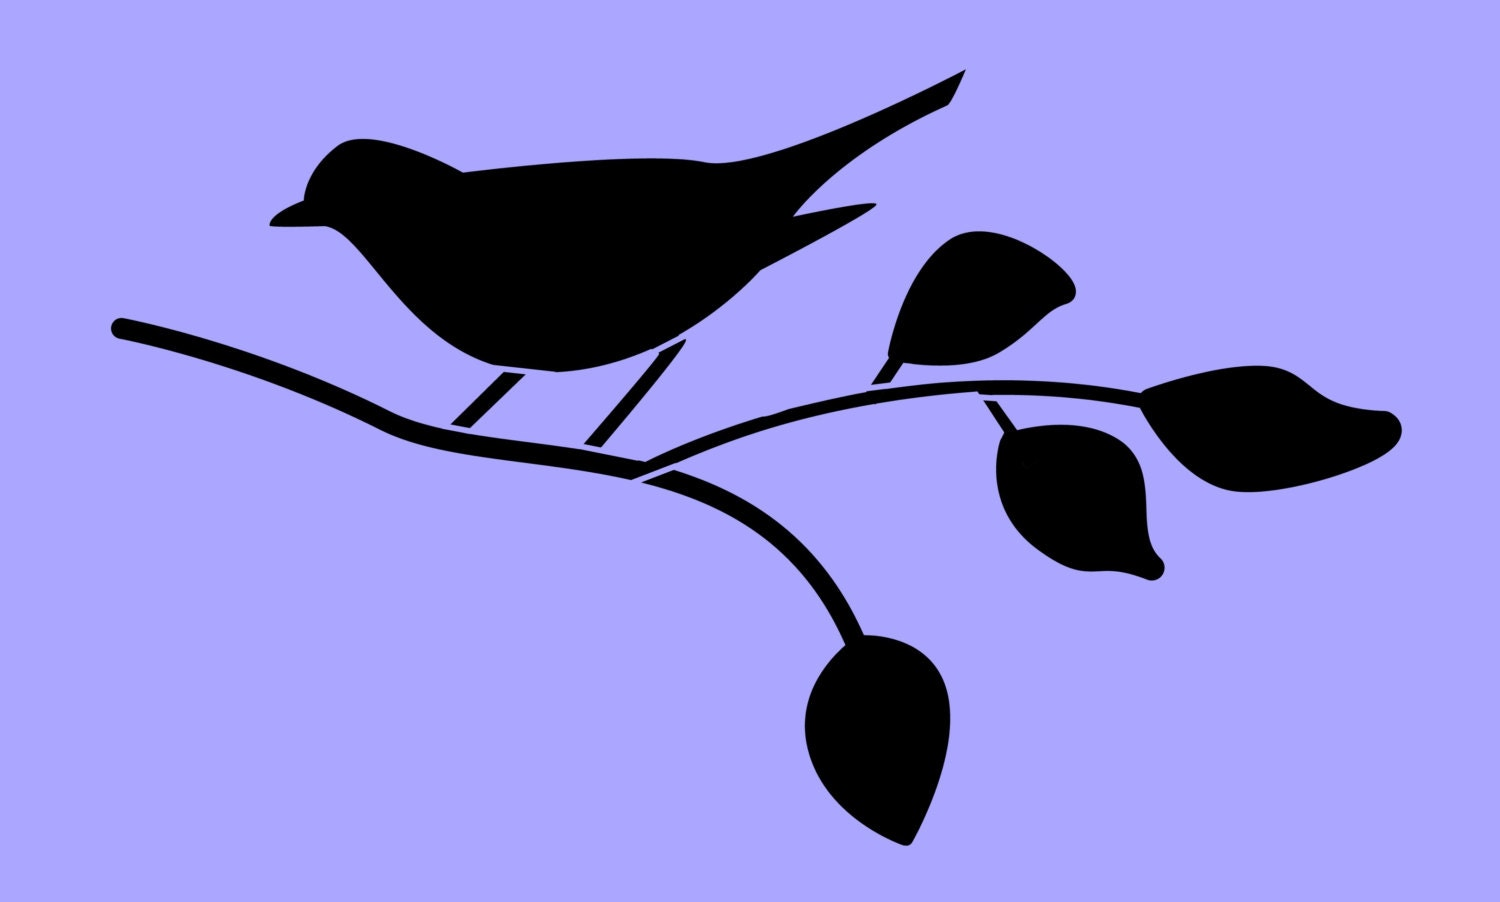 STENCIL Bird on Branch Silhouette 8x4.8